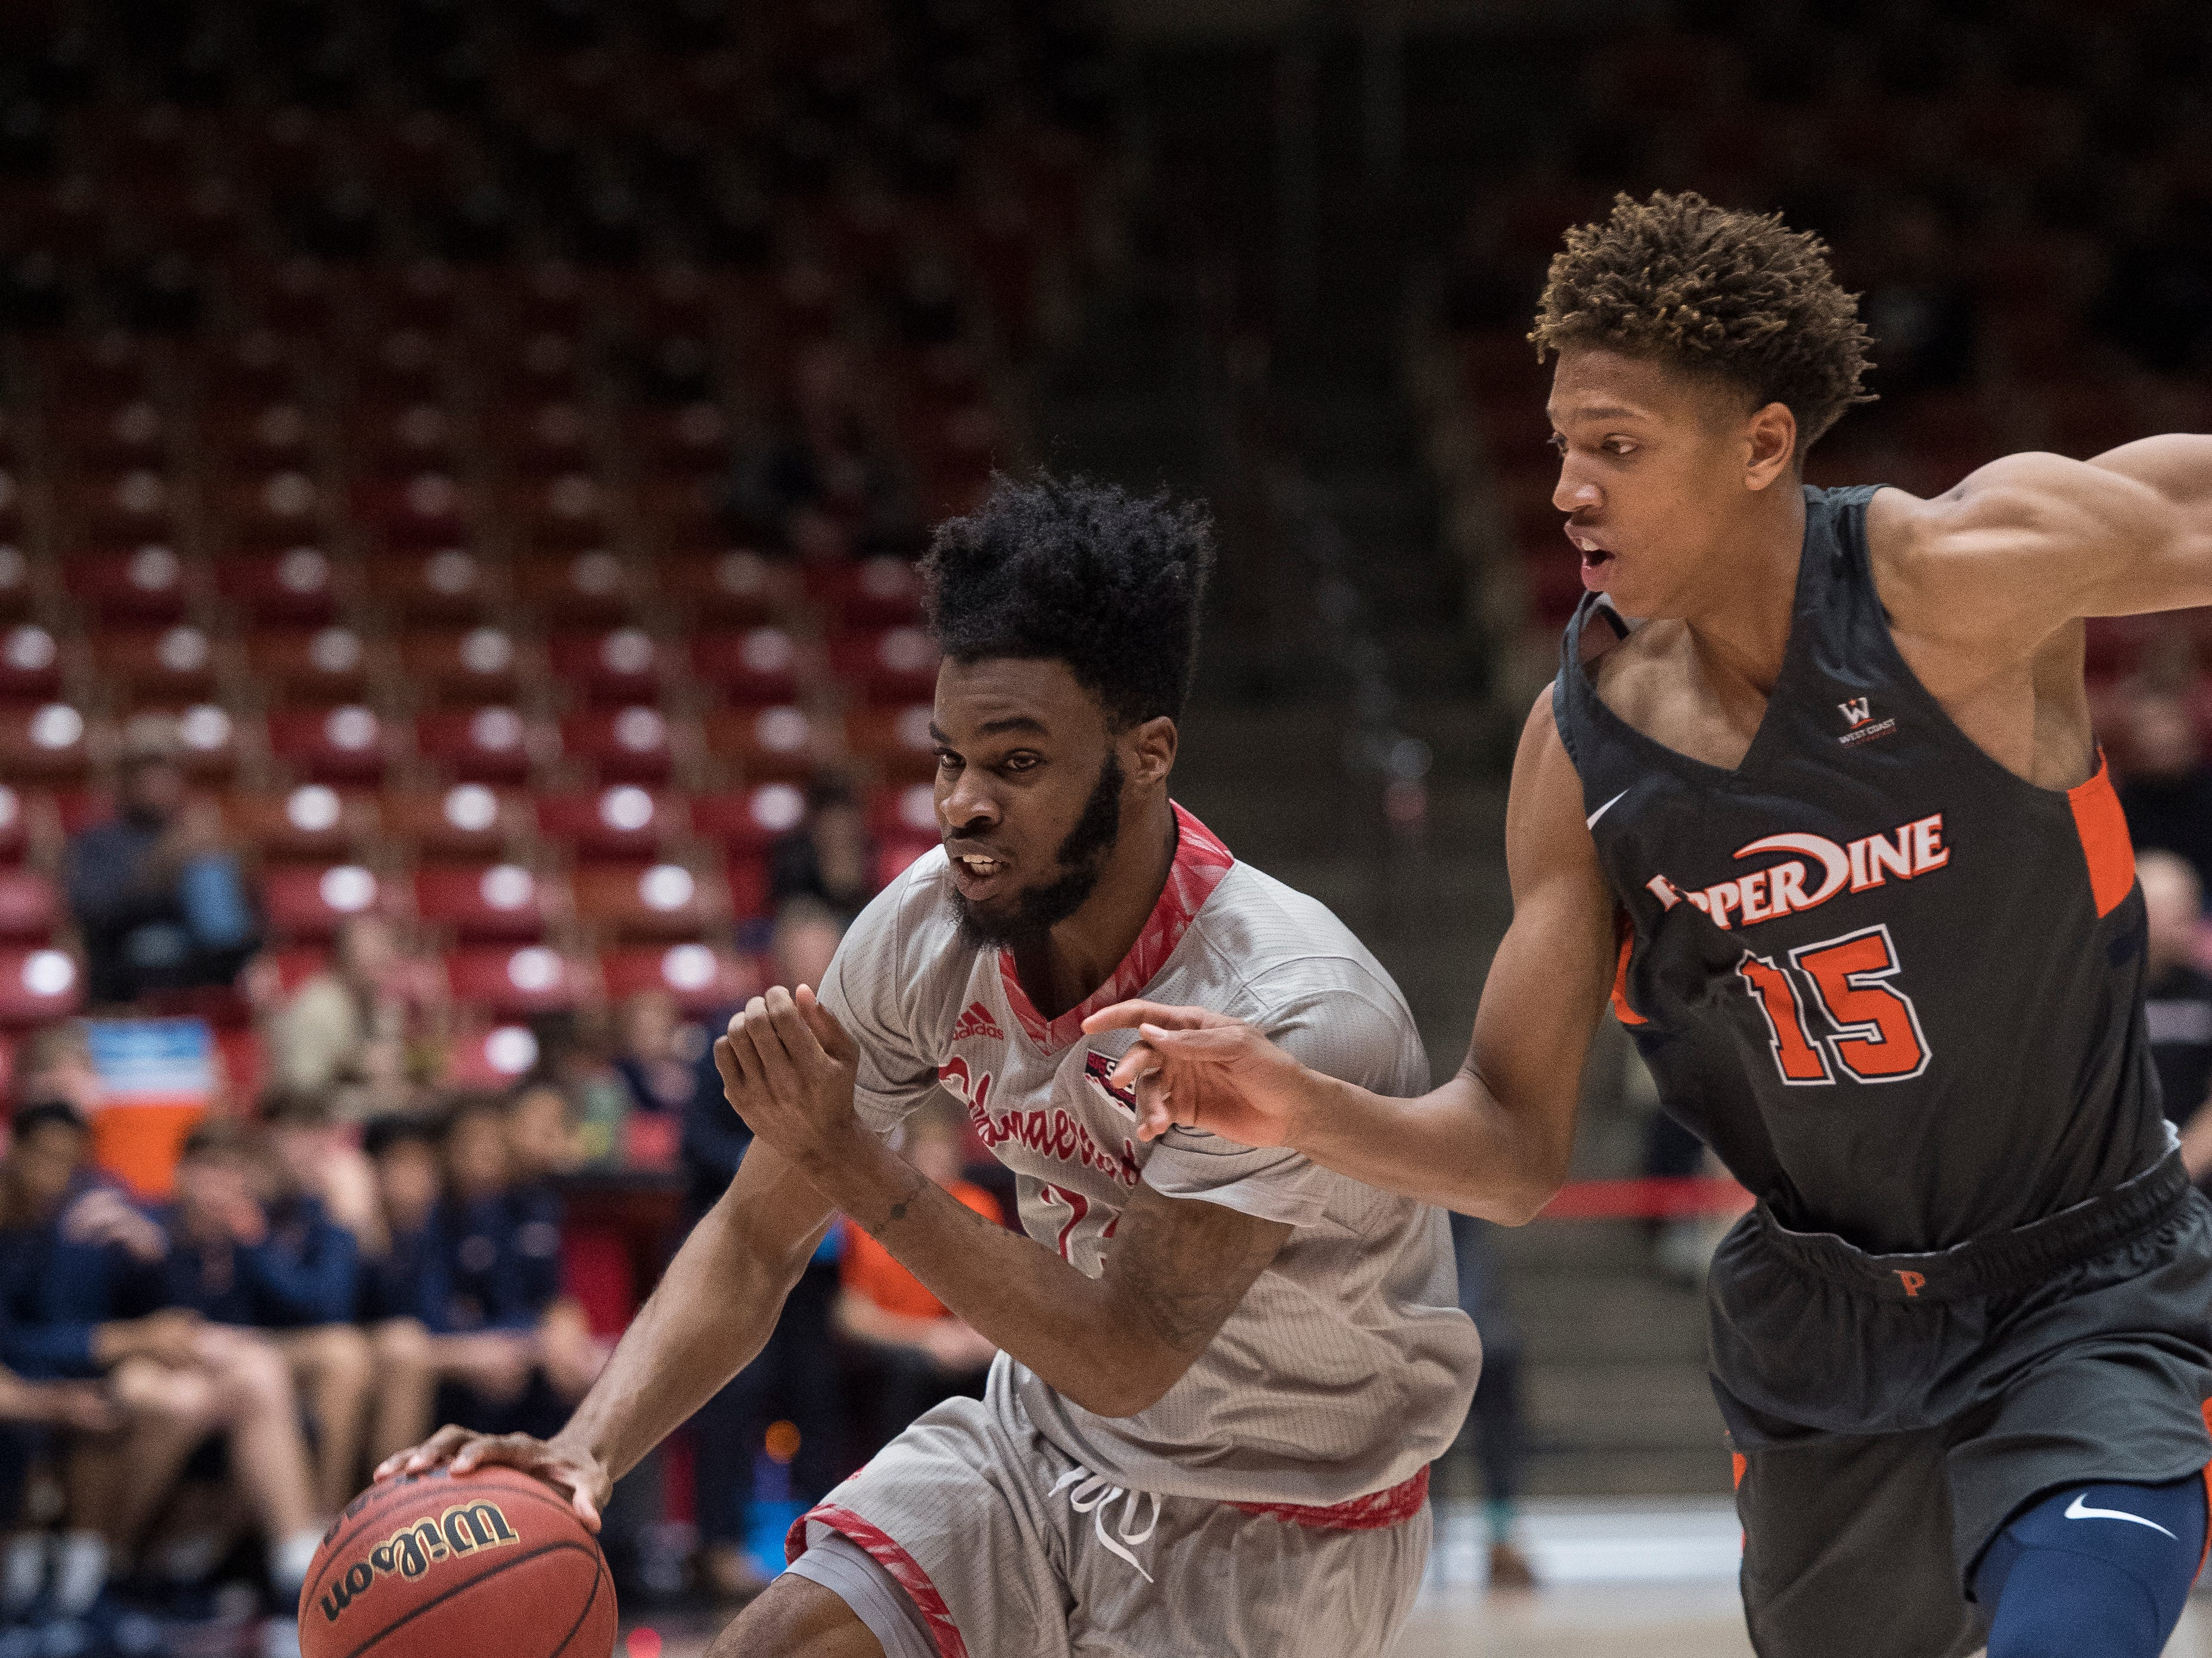 Southern Utah University junior Cameron Oluyitan (23) runs for the basket against Pepperdine University in the America First Event Center Saturday, December 15, 2018. SUU won in overtime, 78-69.